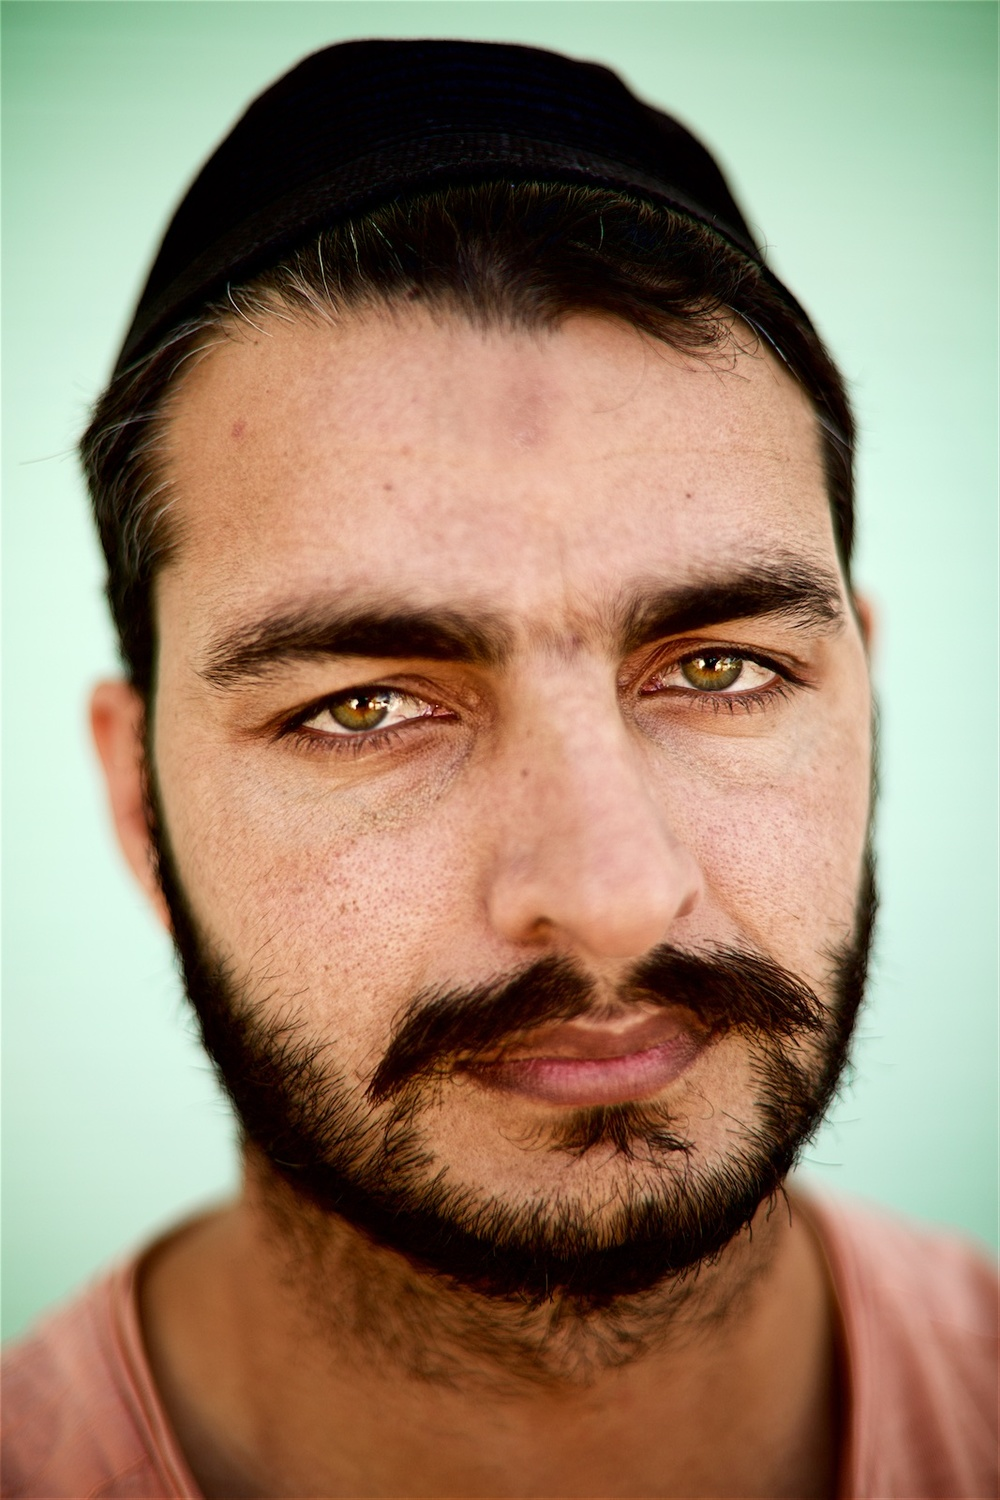 permanently-temporary-refugees-italy-rifugiati-italia-denis-bosnic-photography-portraits-4 (1).jpg